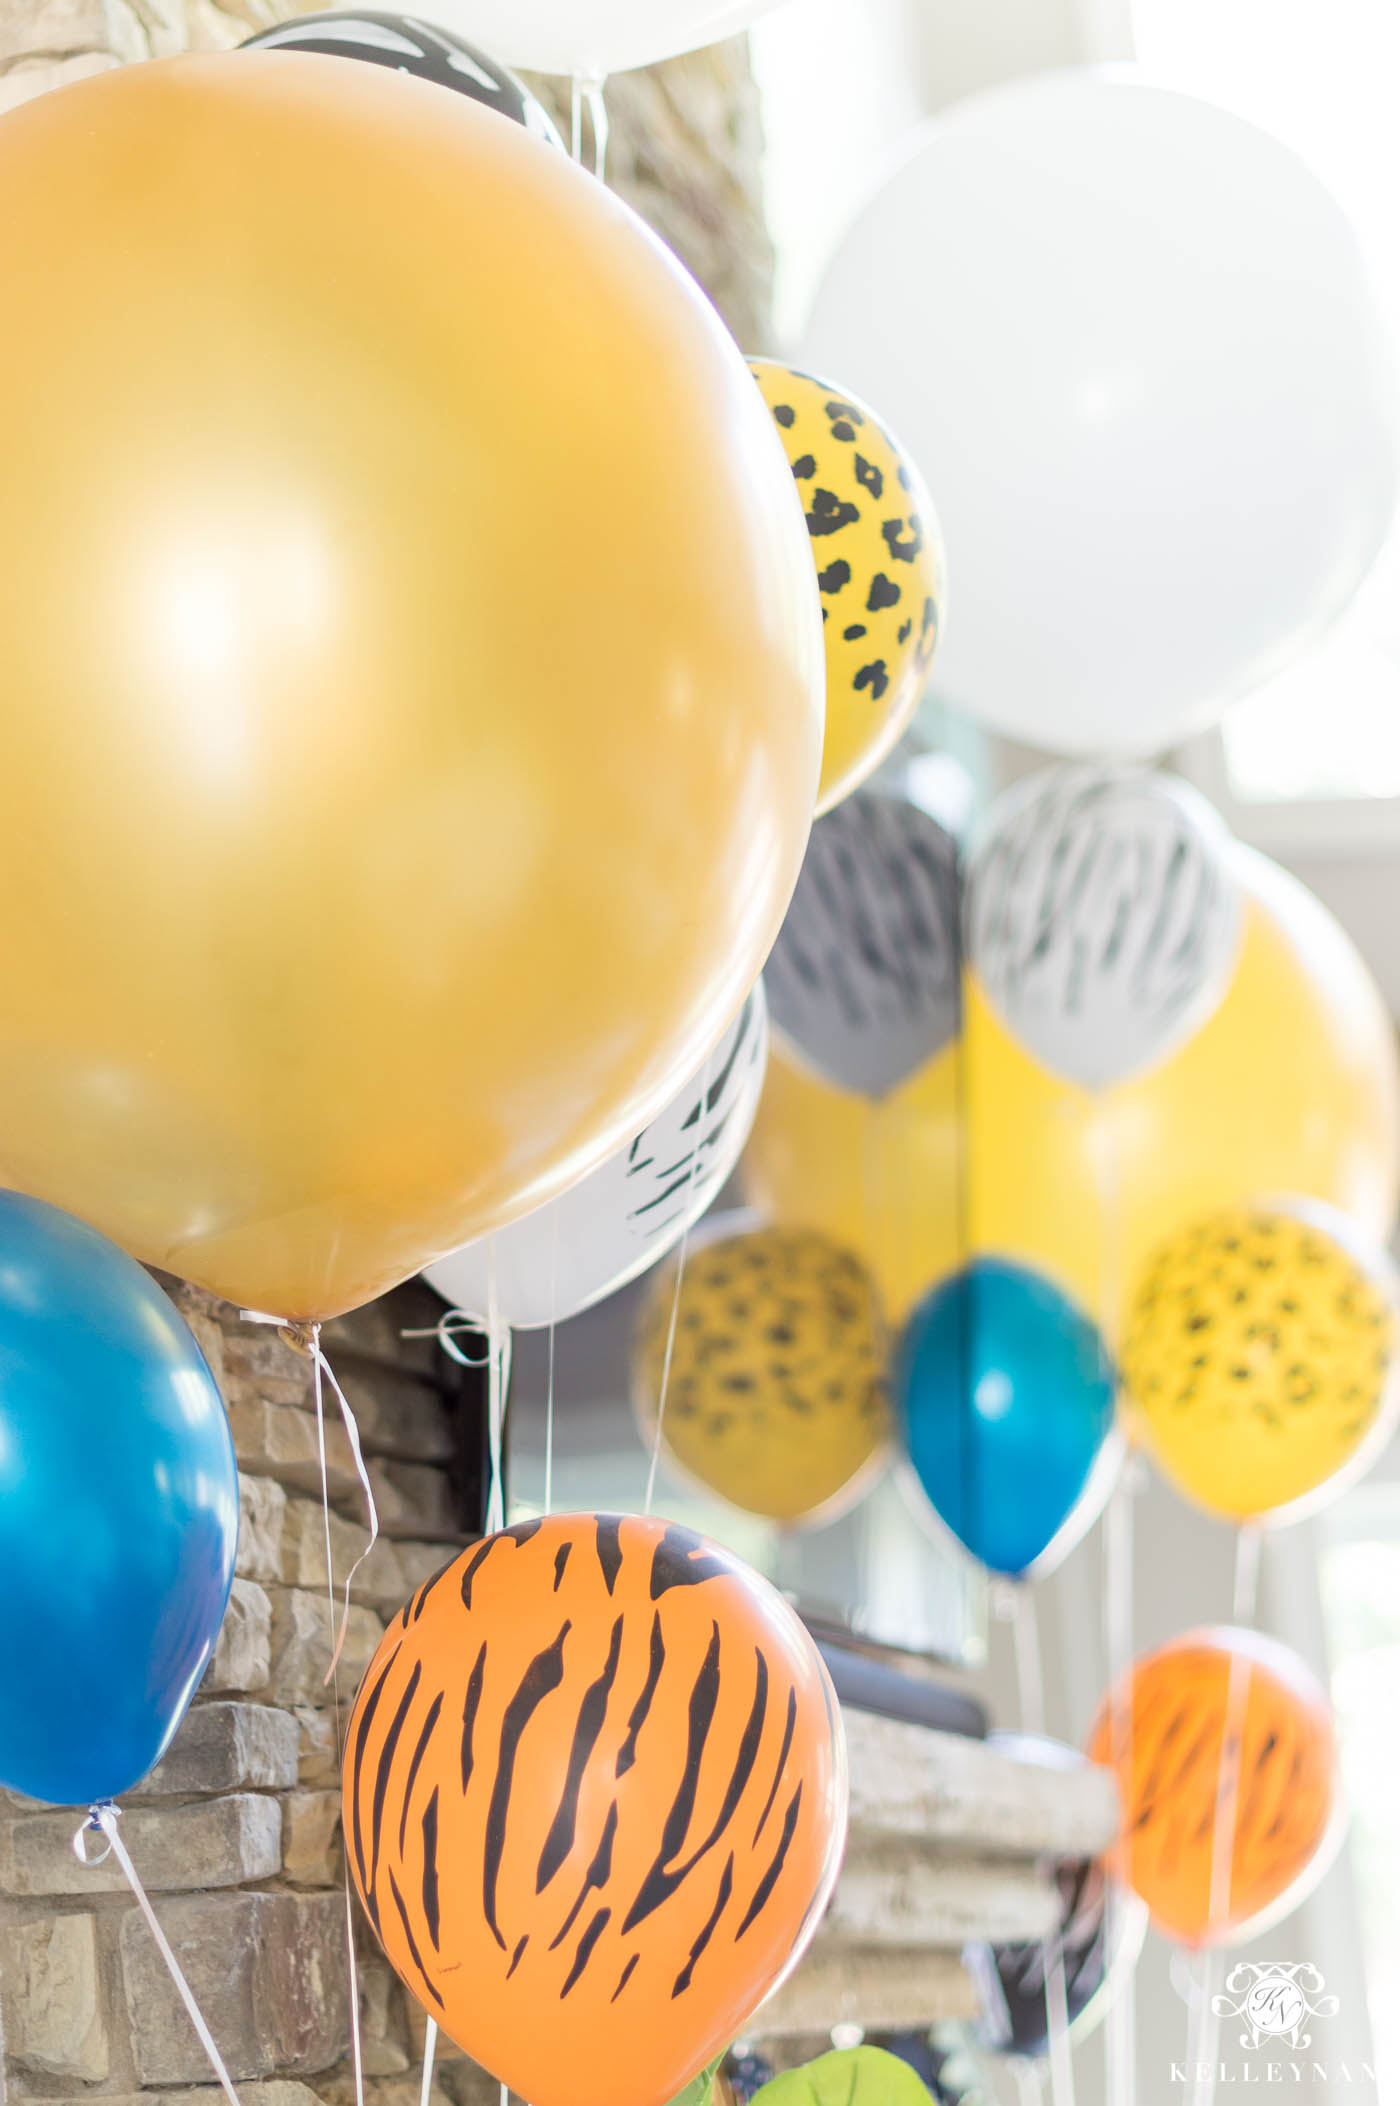 Baby Shower Animal Print Balloons for Noah's Ark Themed Twin Baby Shower